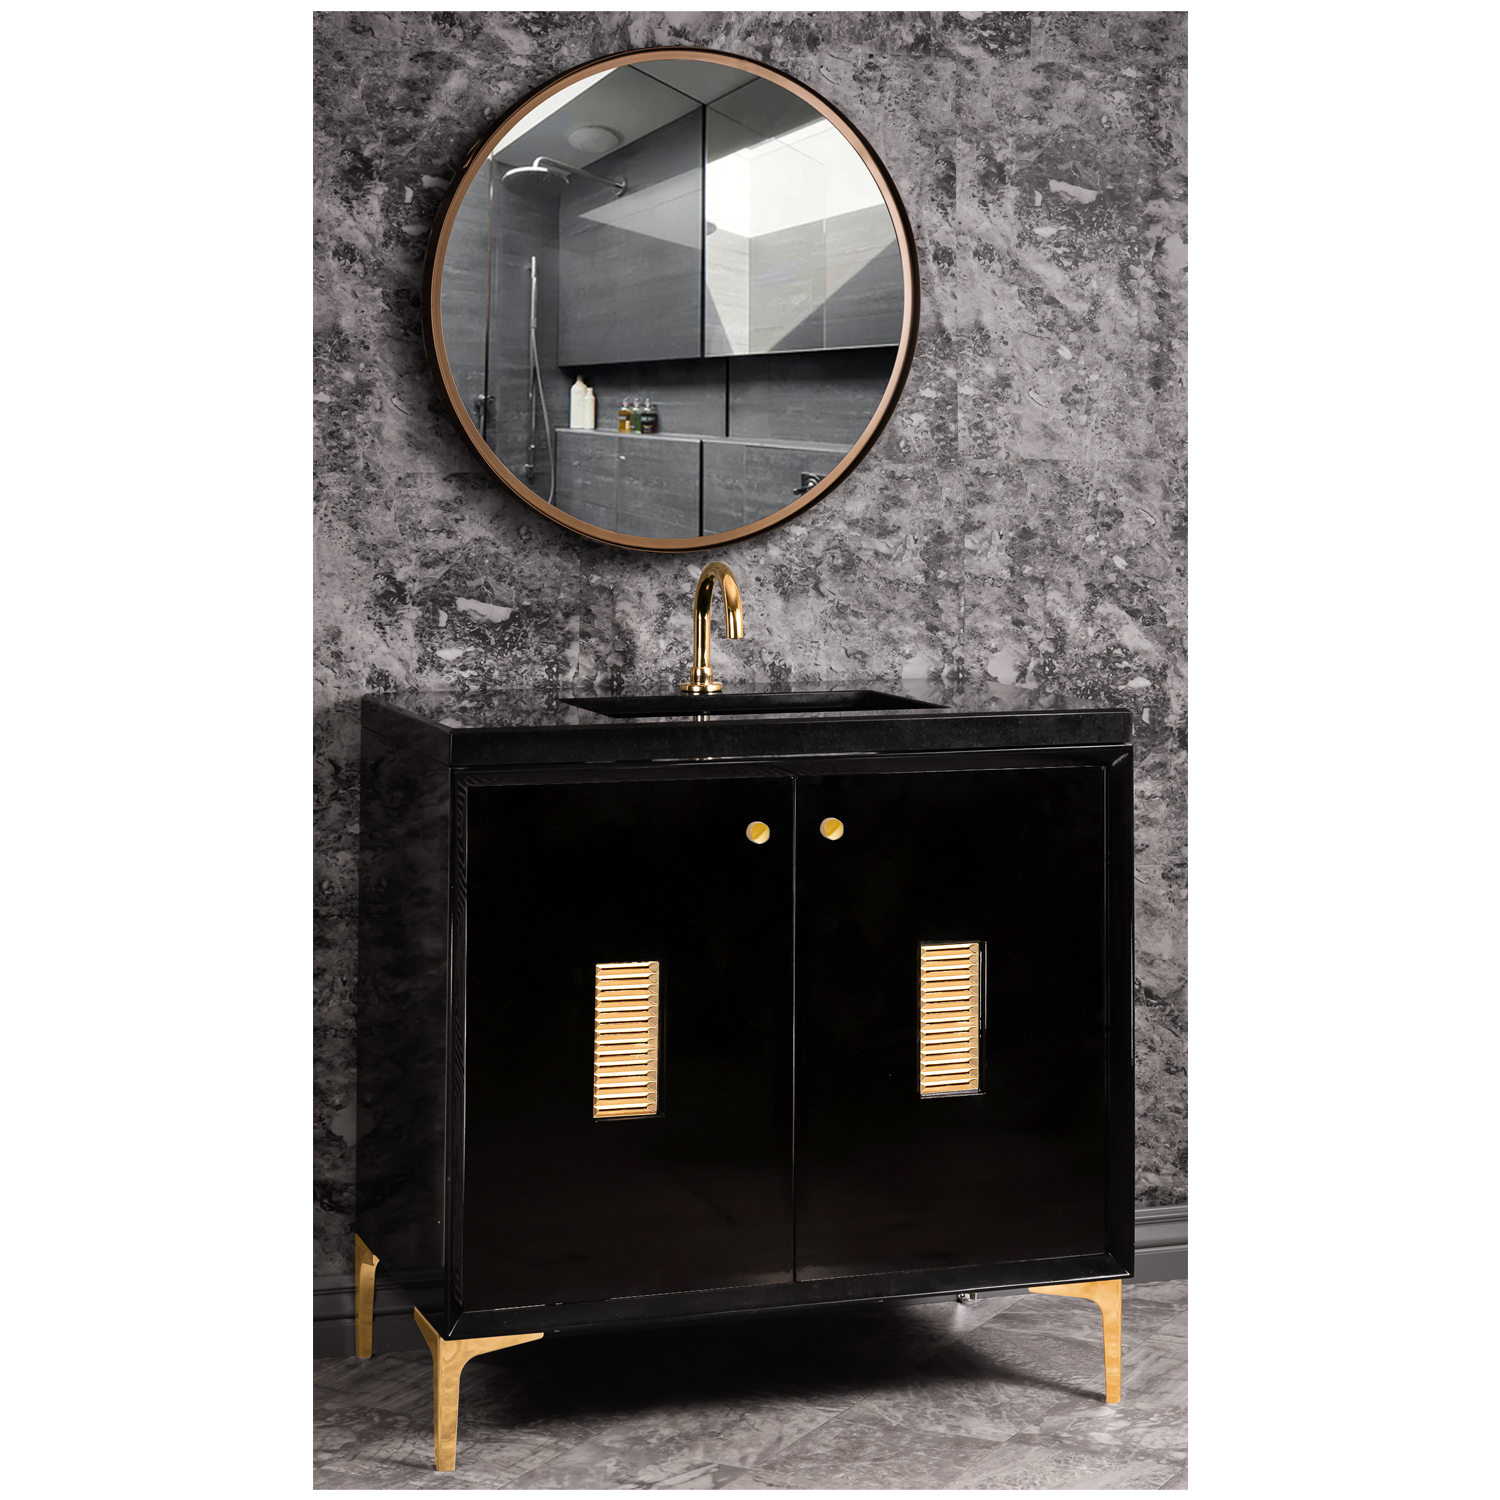 """VAN36B-013 36"""" Black Frame With Louver - Shown with PB (Polished Brass)"""